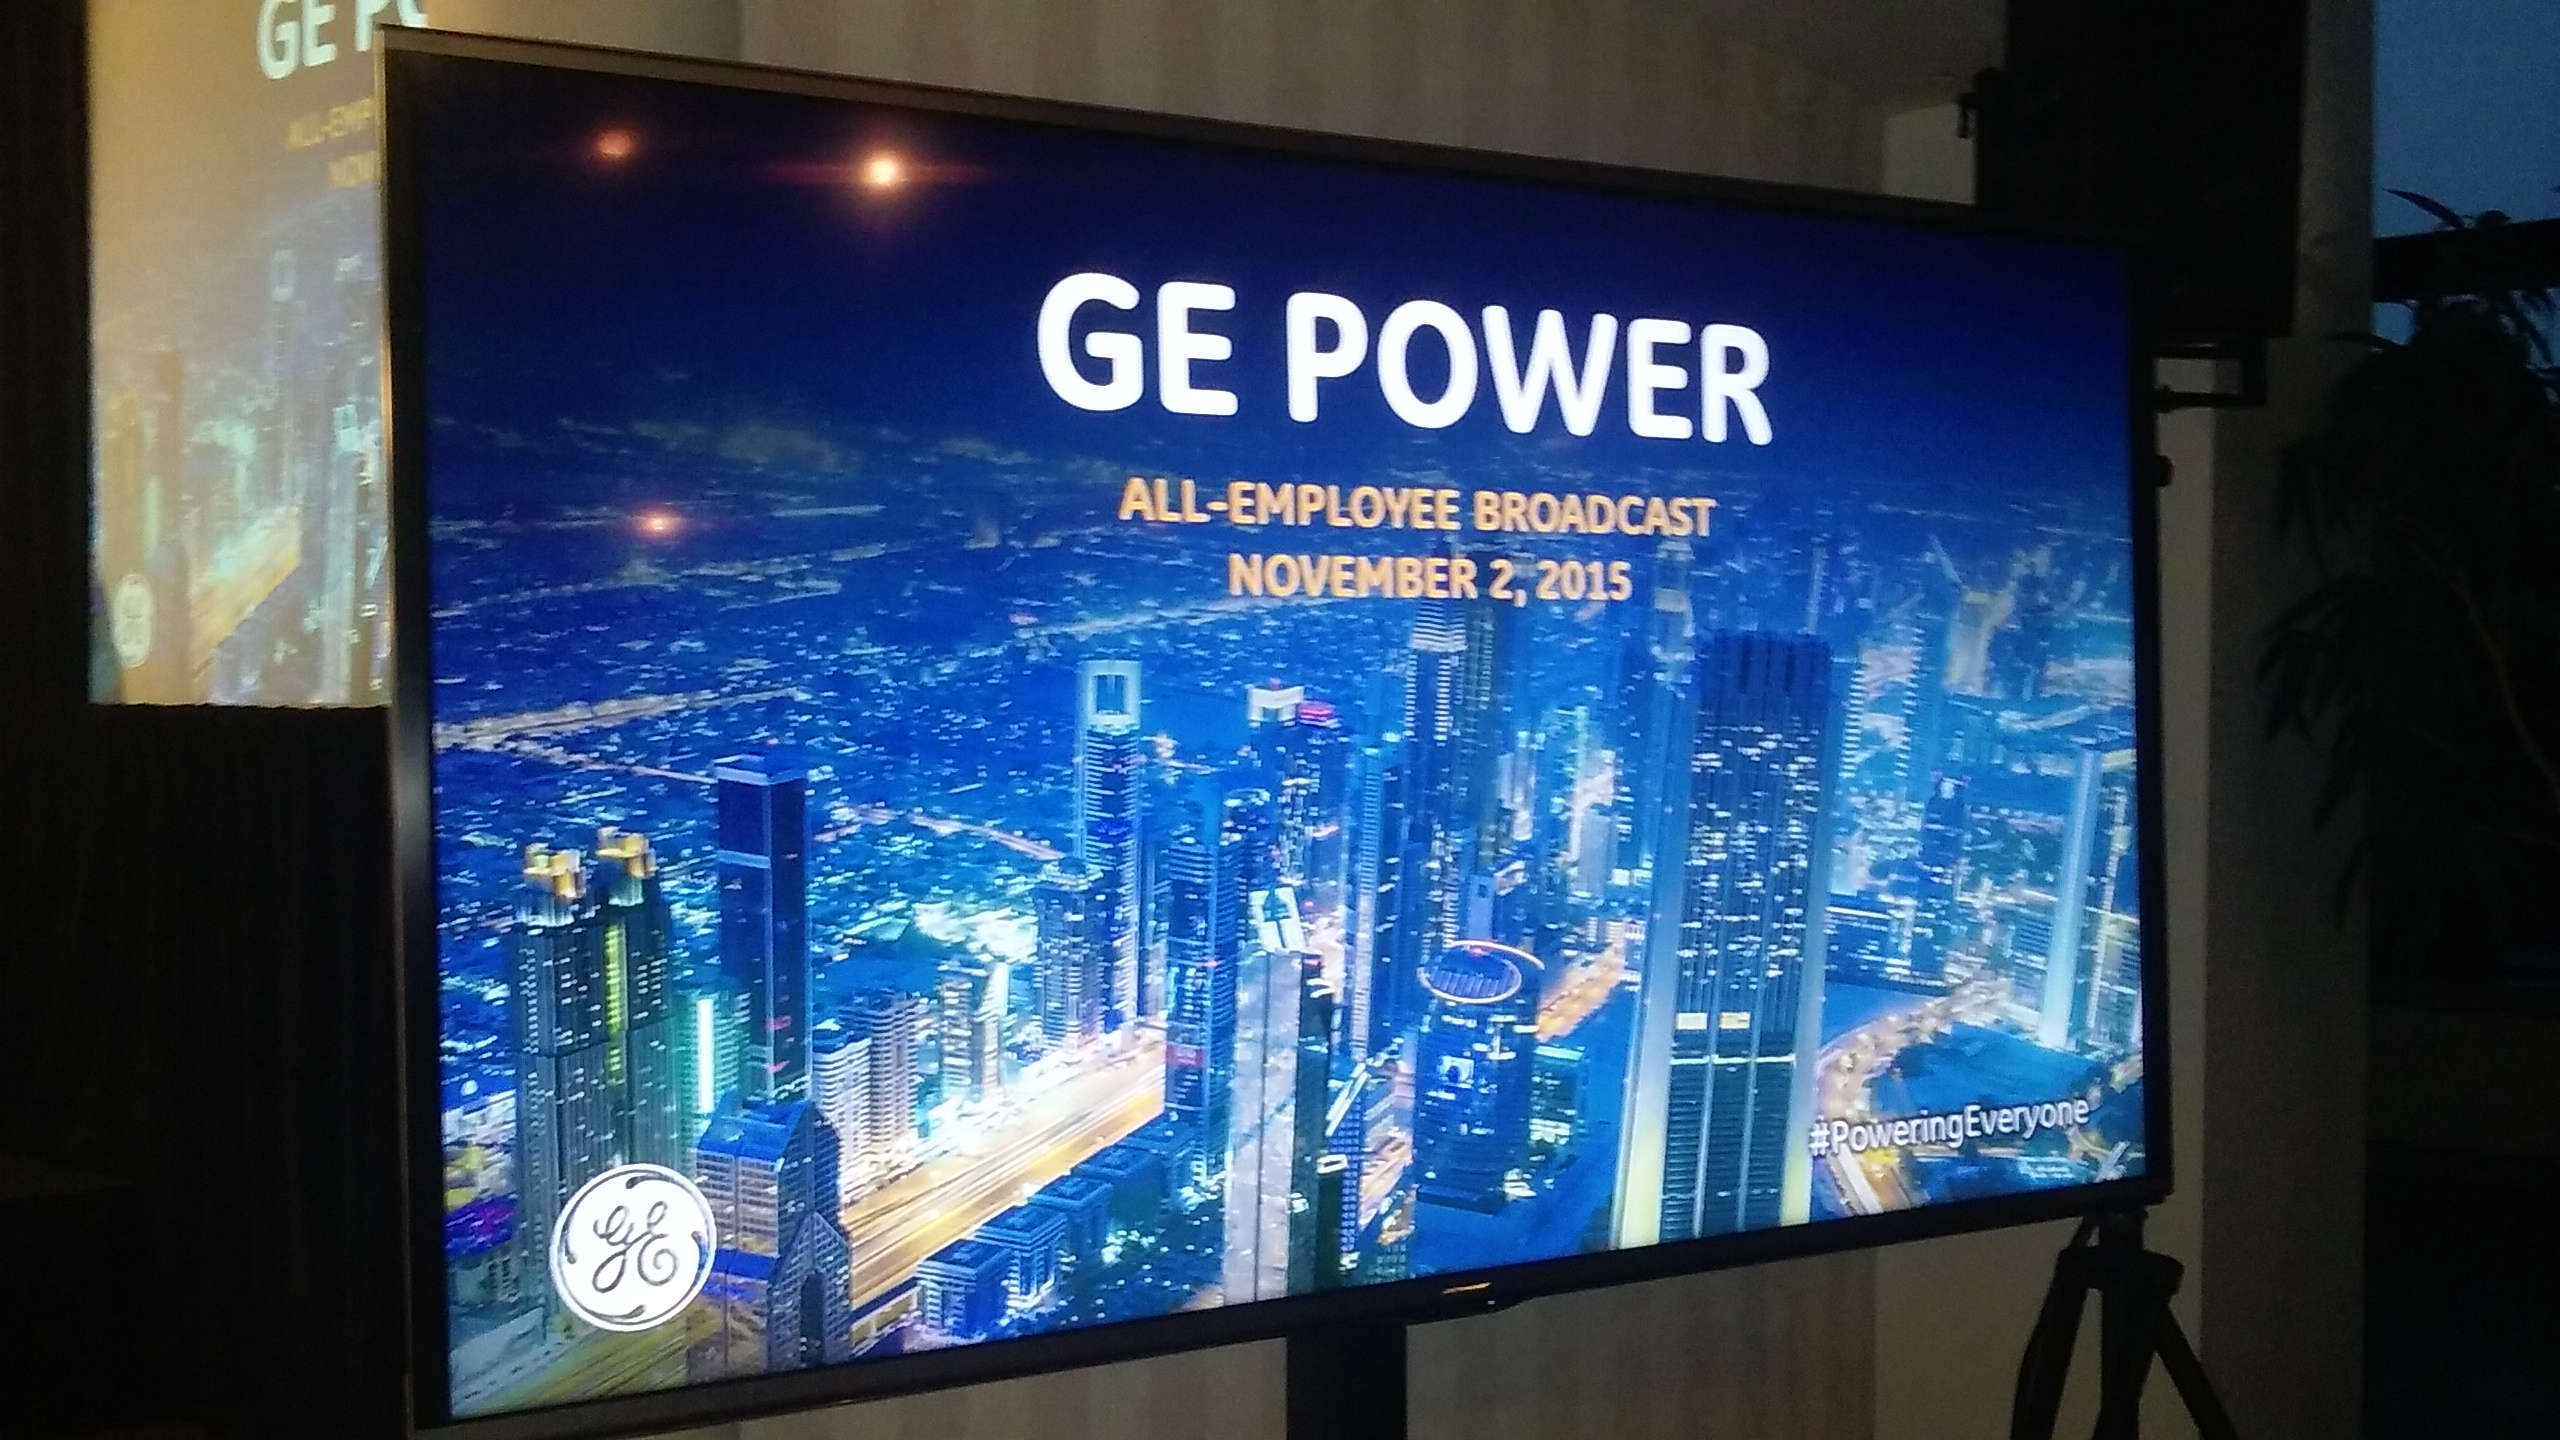 TVI provides event presentation services for GE POWER All-Employee Broadcast